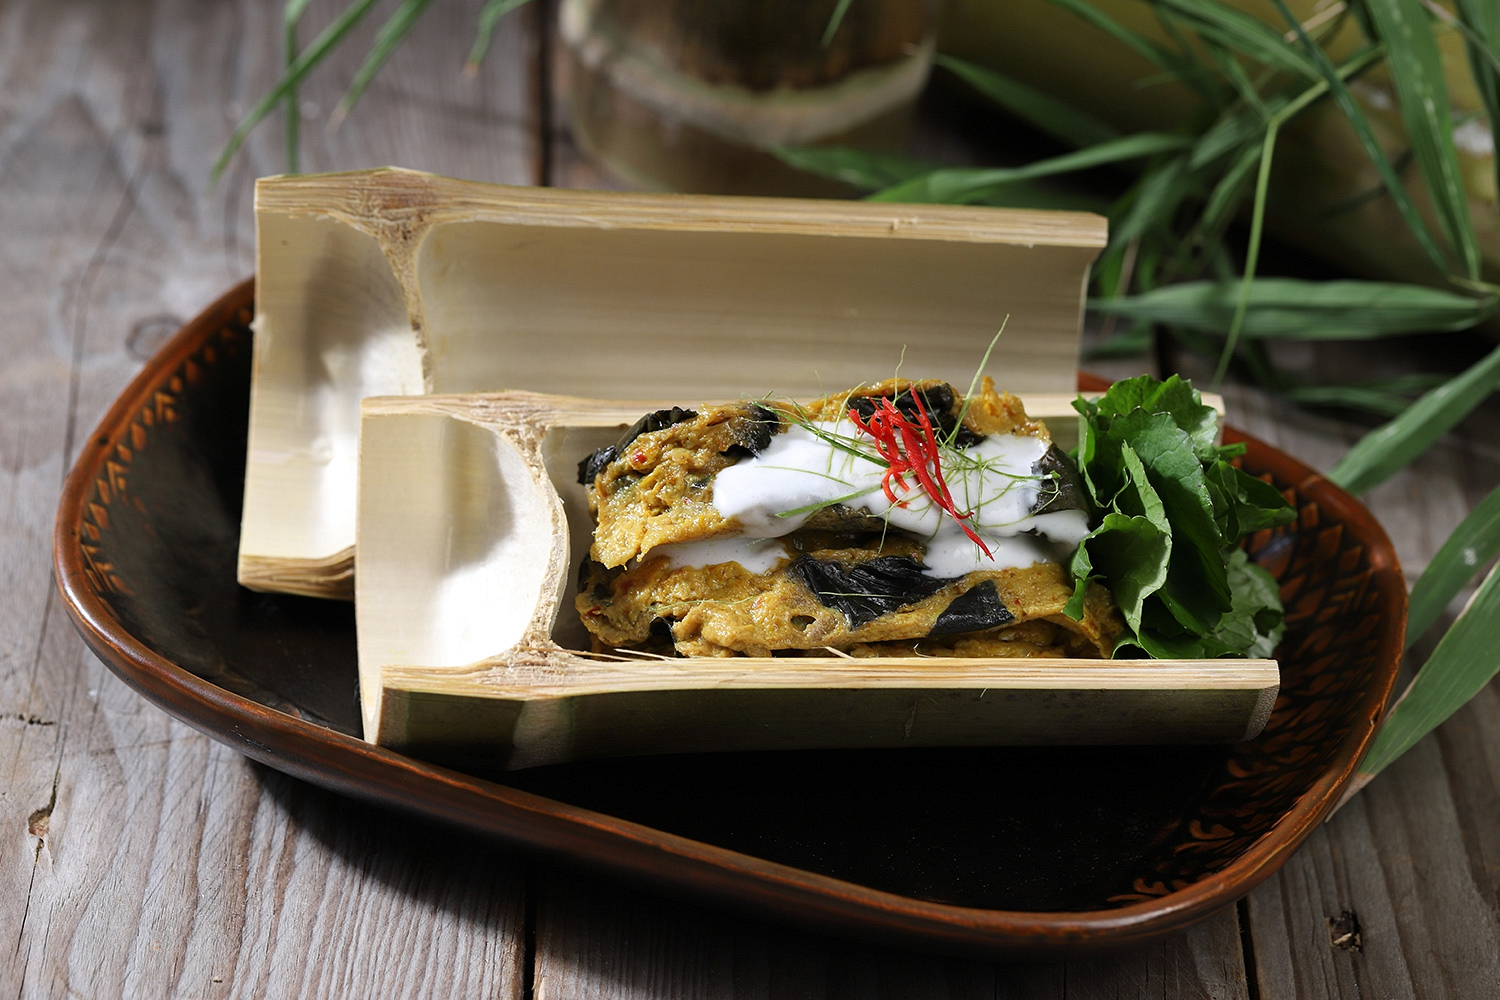 Thai Steamed Curried Fish in Bamboo Tube